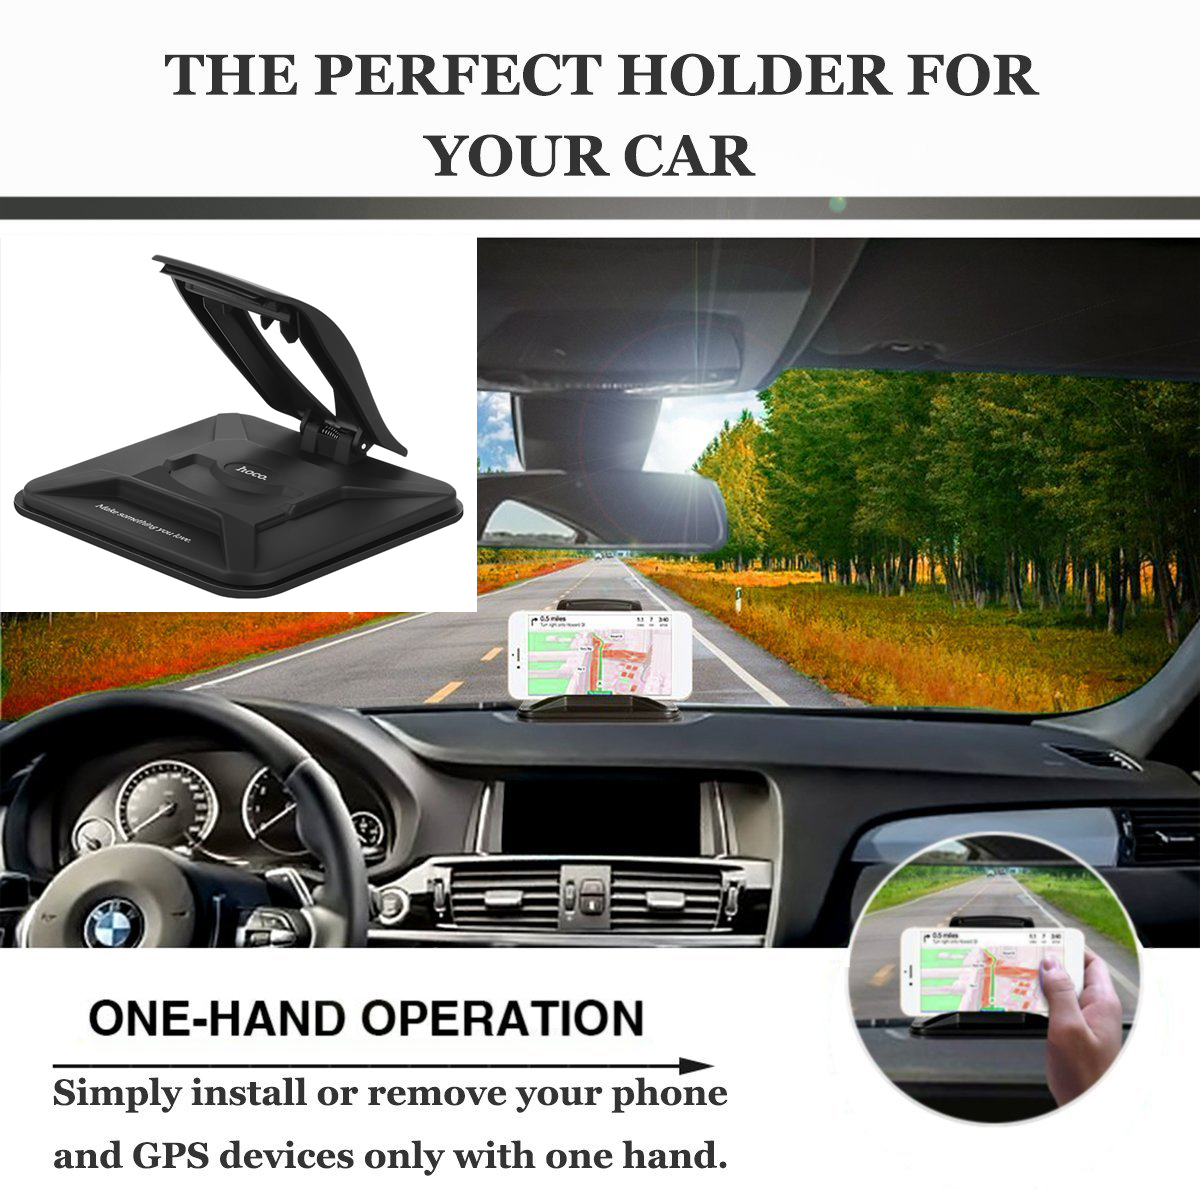 HOCO CA21 Automotive Center Stack Car Holder Silicone Phone Stand Mount for iPhone X 8 Samsung S8